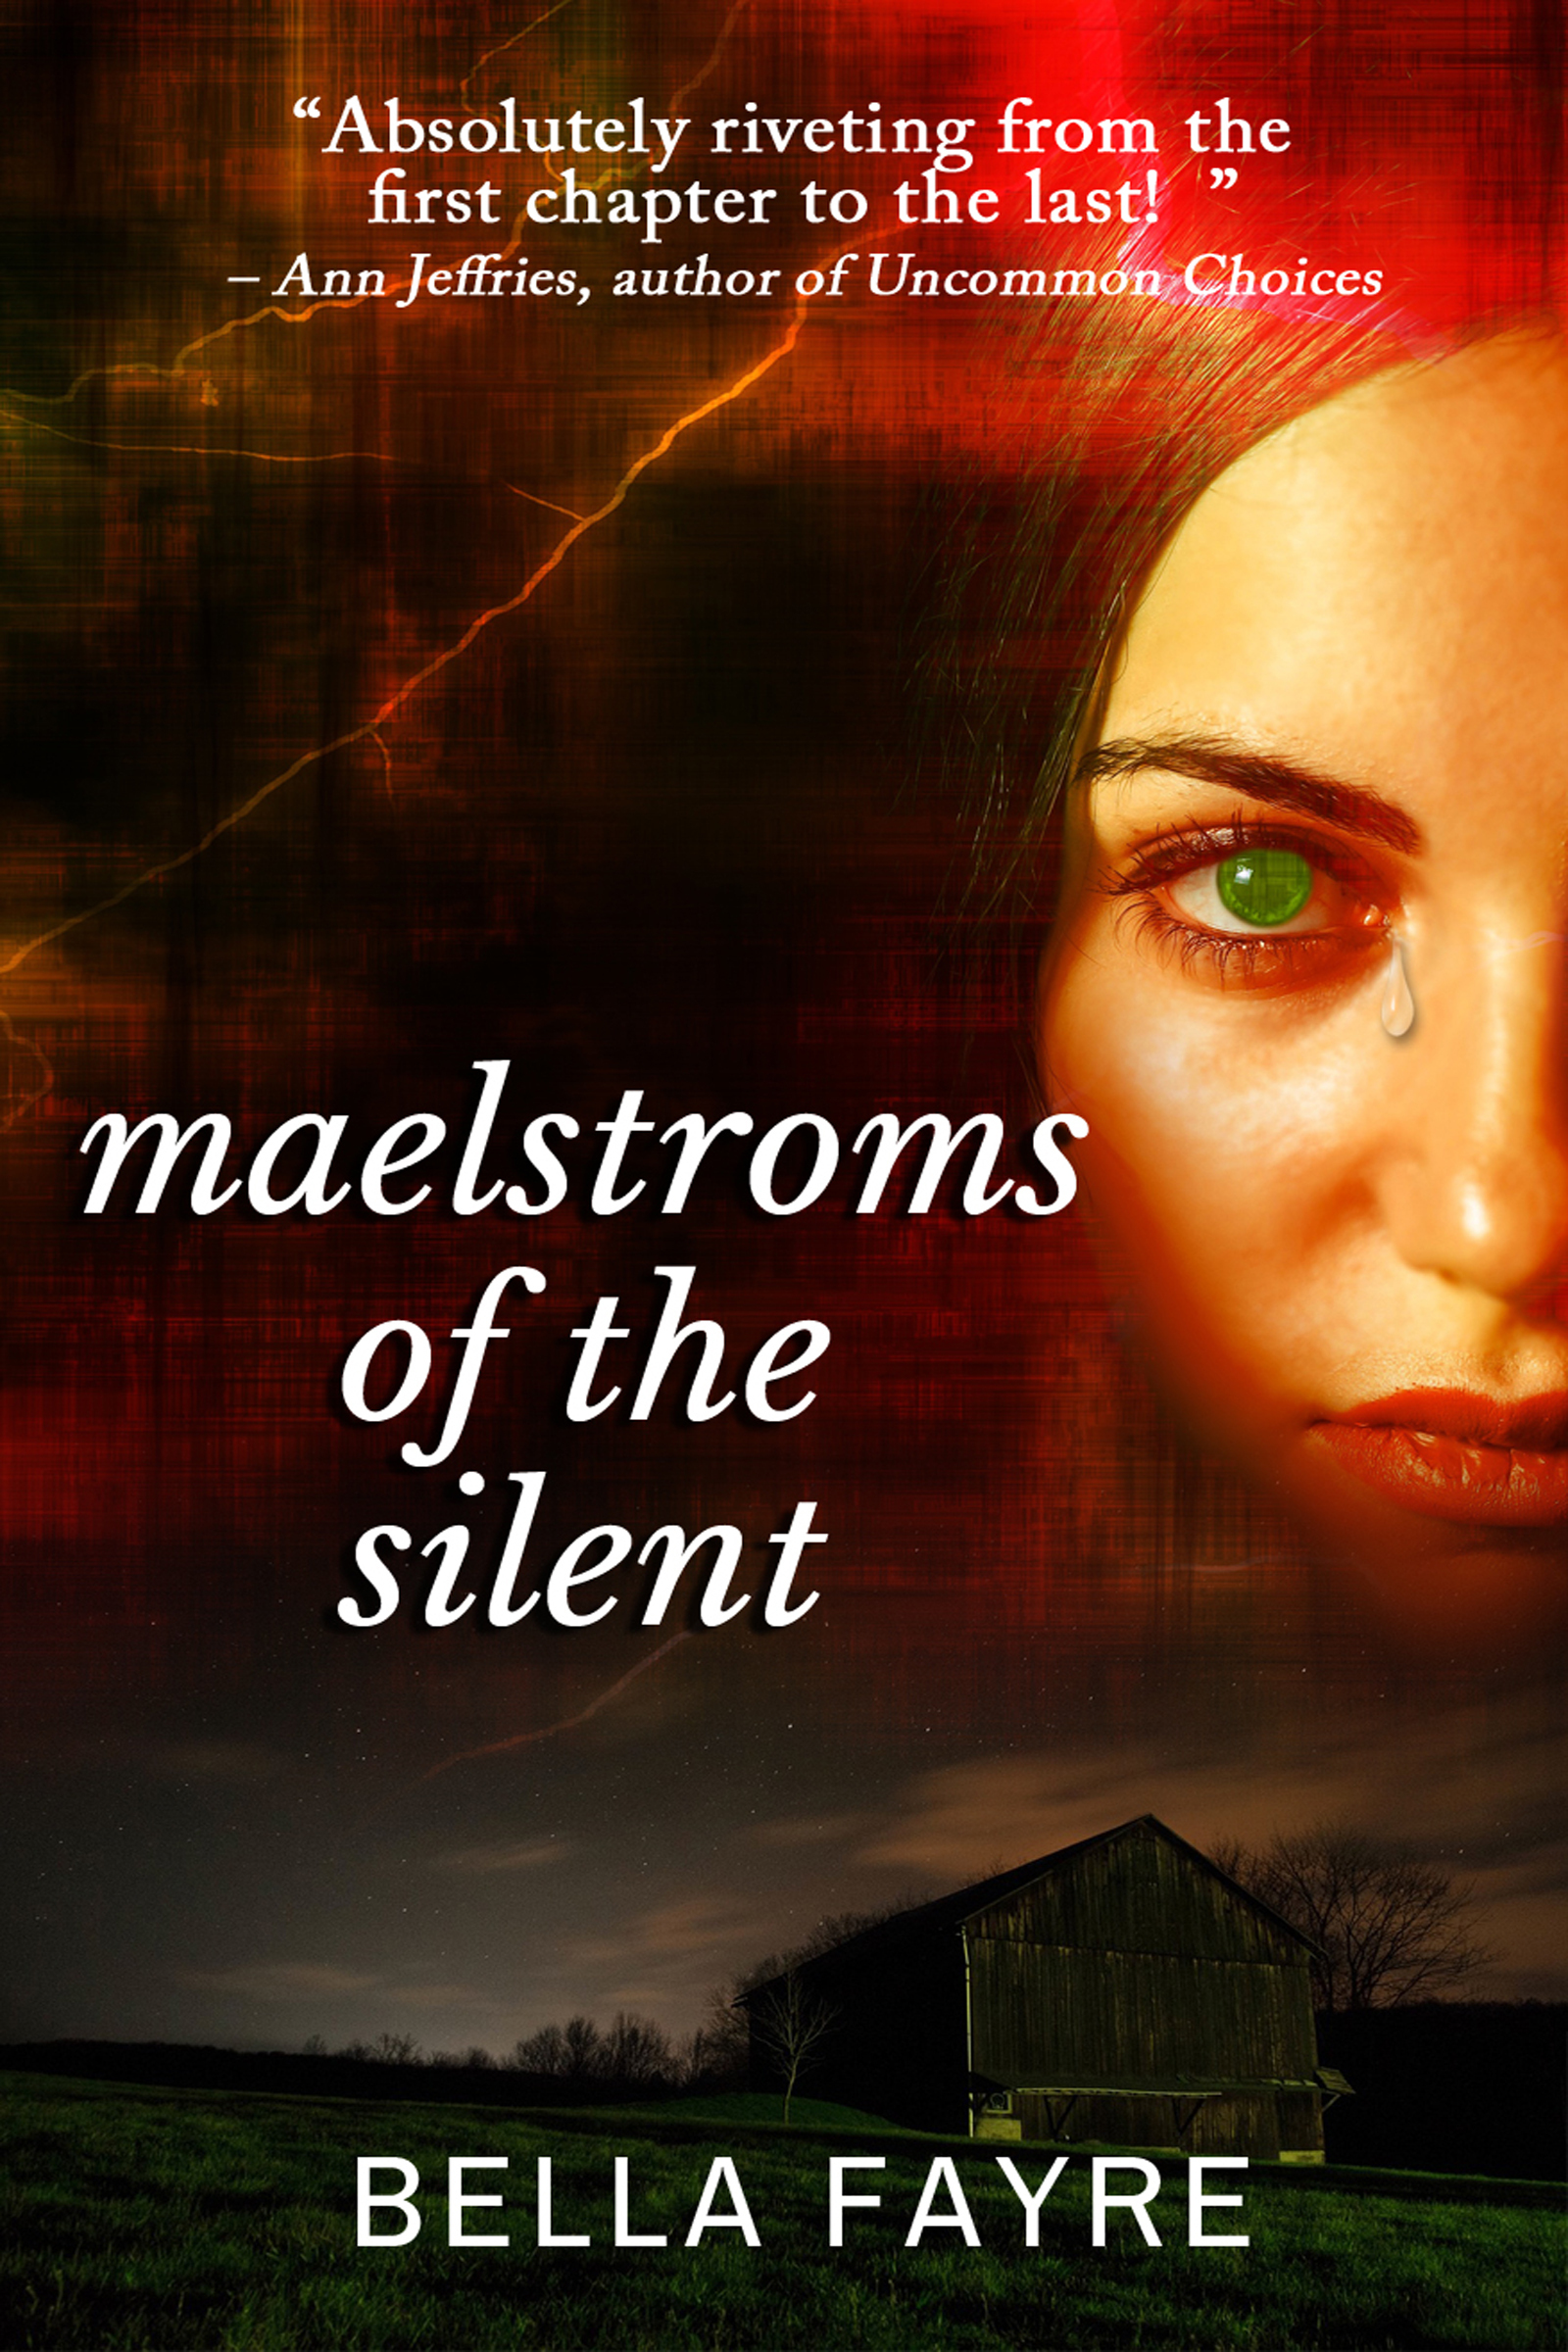 Maelstroms of the Silent Bella Fayre